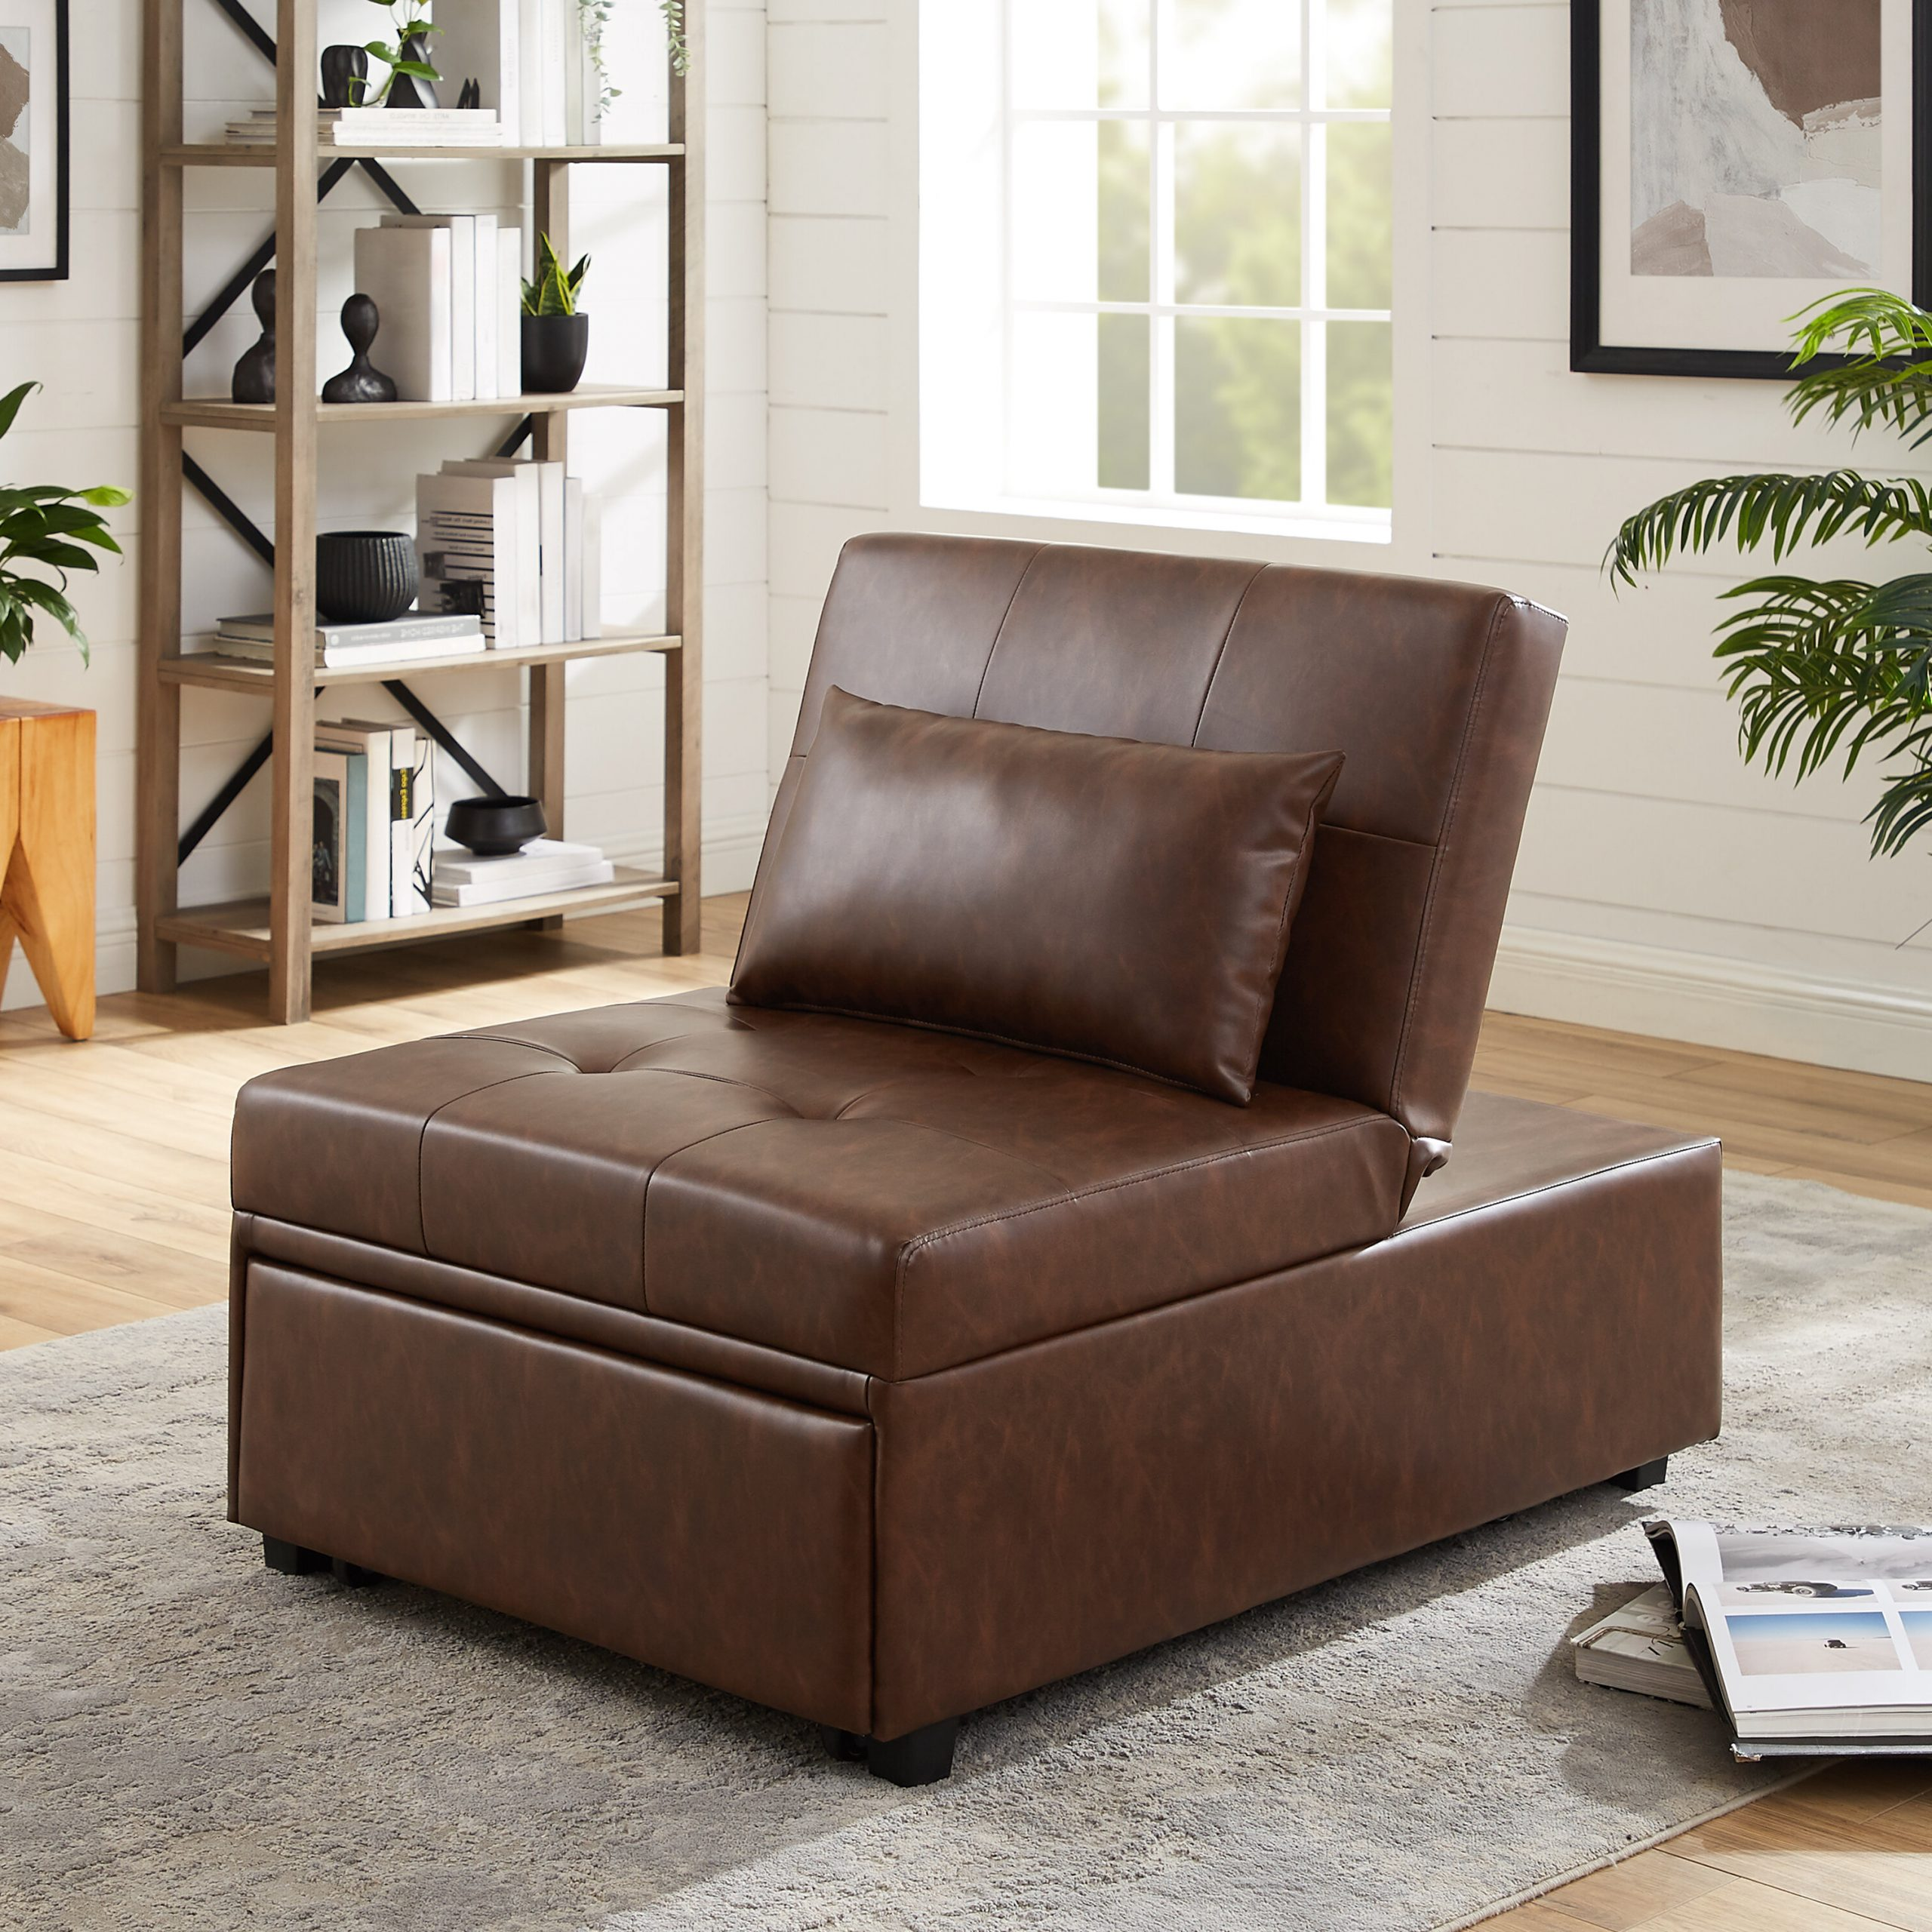 Convertible Solid Accent Chairs You'll Love In 2020 Regarding Popular Perz Tufted Faux Leather Convertible Chairs (View 12 of 20)